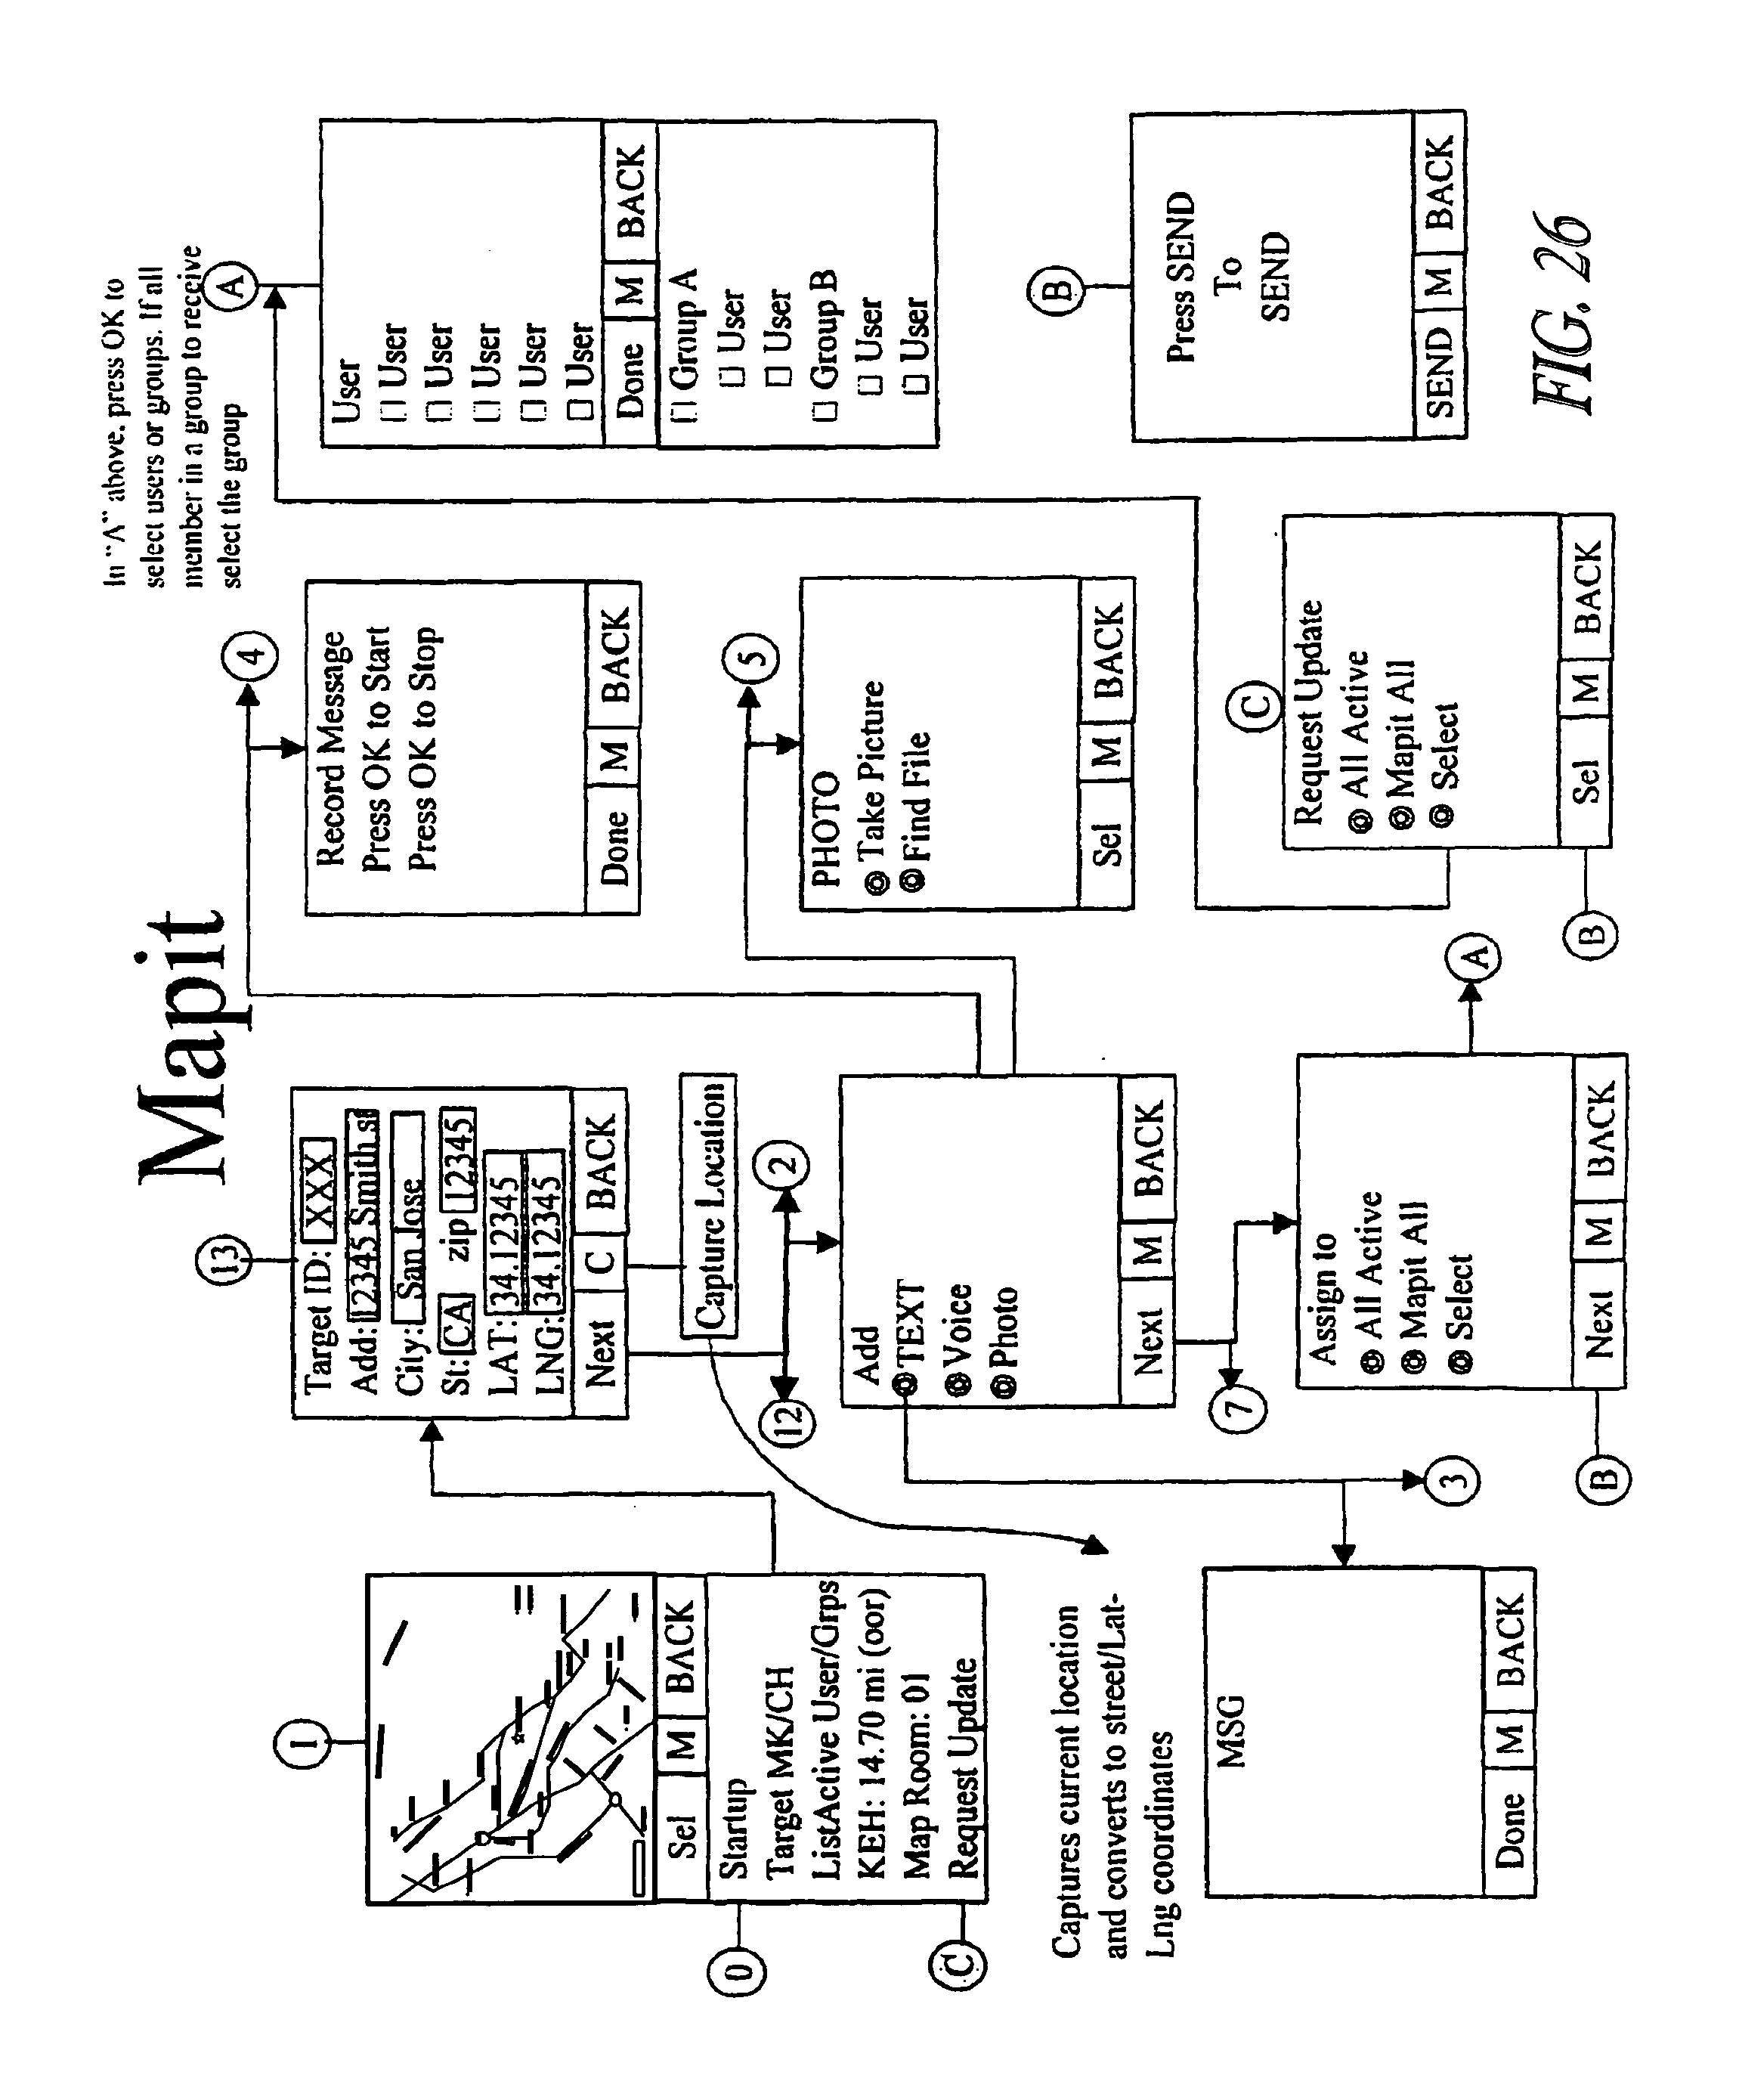 Us20110275388a1 Methods And Apparatuses For Geospatial Based Installing Aeon Labs Micro Dimmer On 4way Circuit Connected Things Sharing Of Information By Multiple Devices Google Patents